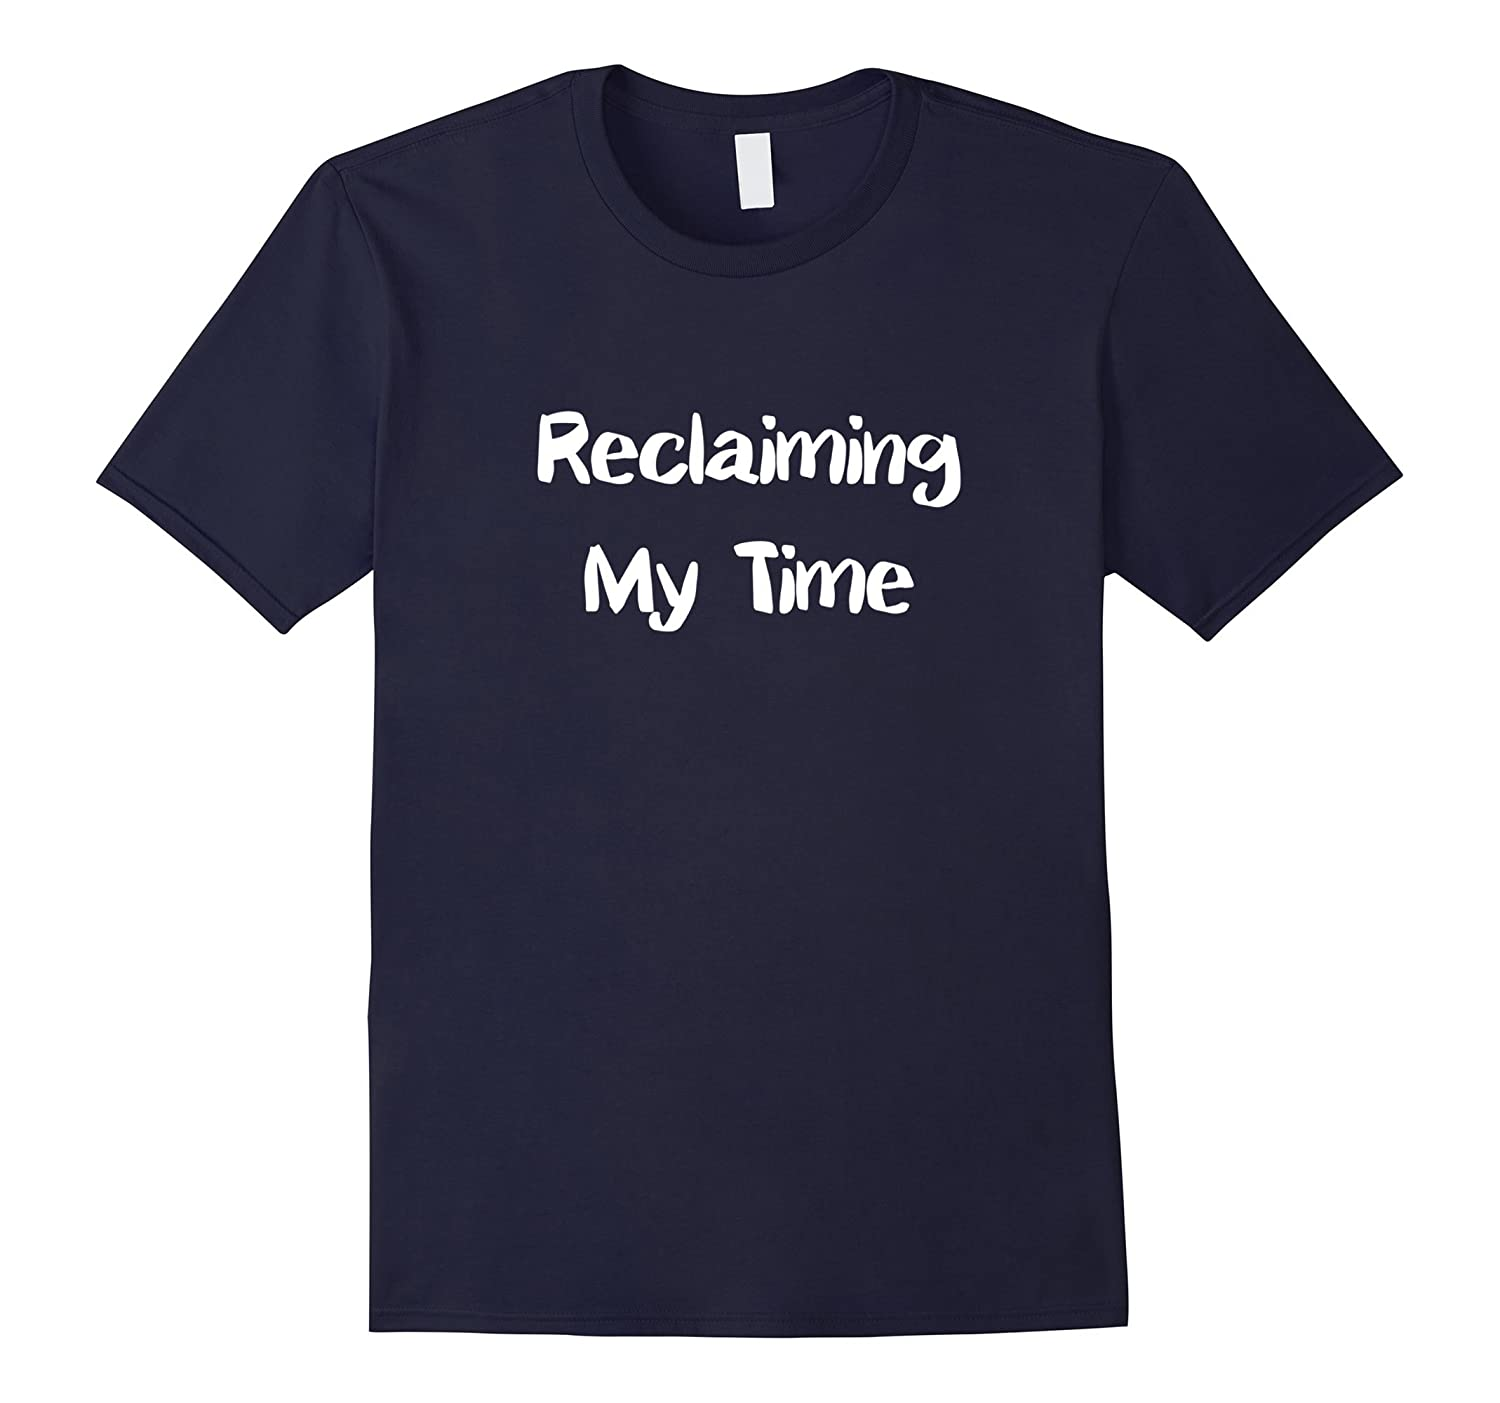 Reclaiming My Time T-Shirt Funny Political-BN